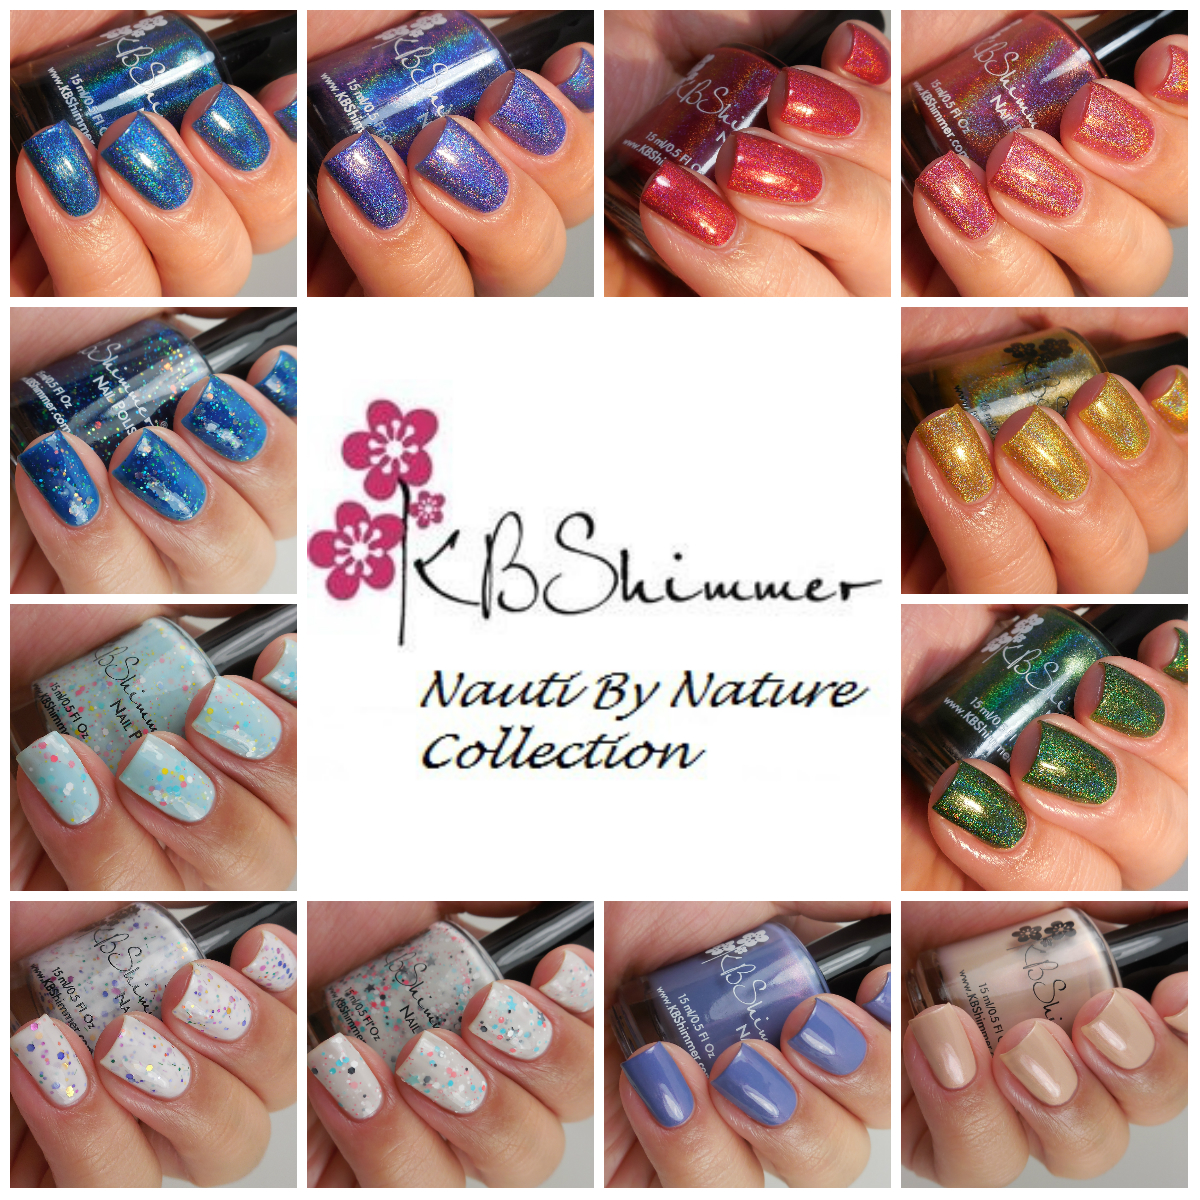 KBShimmer Nauti By Nature Collection Spring 2017